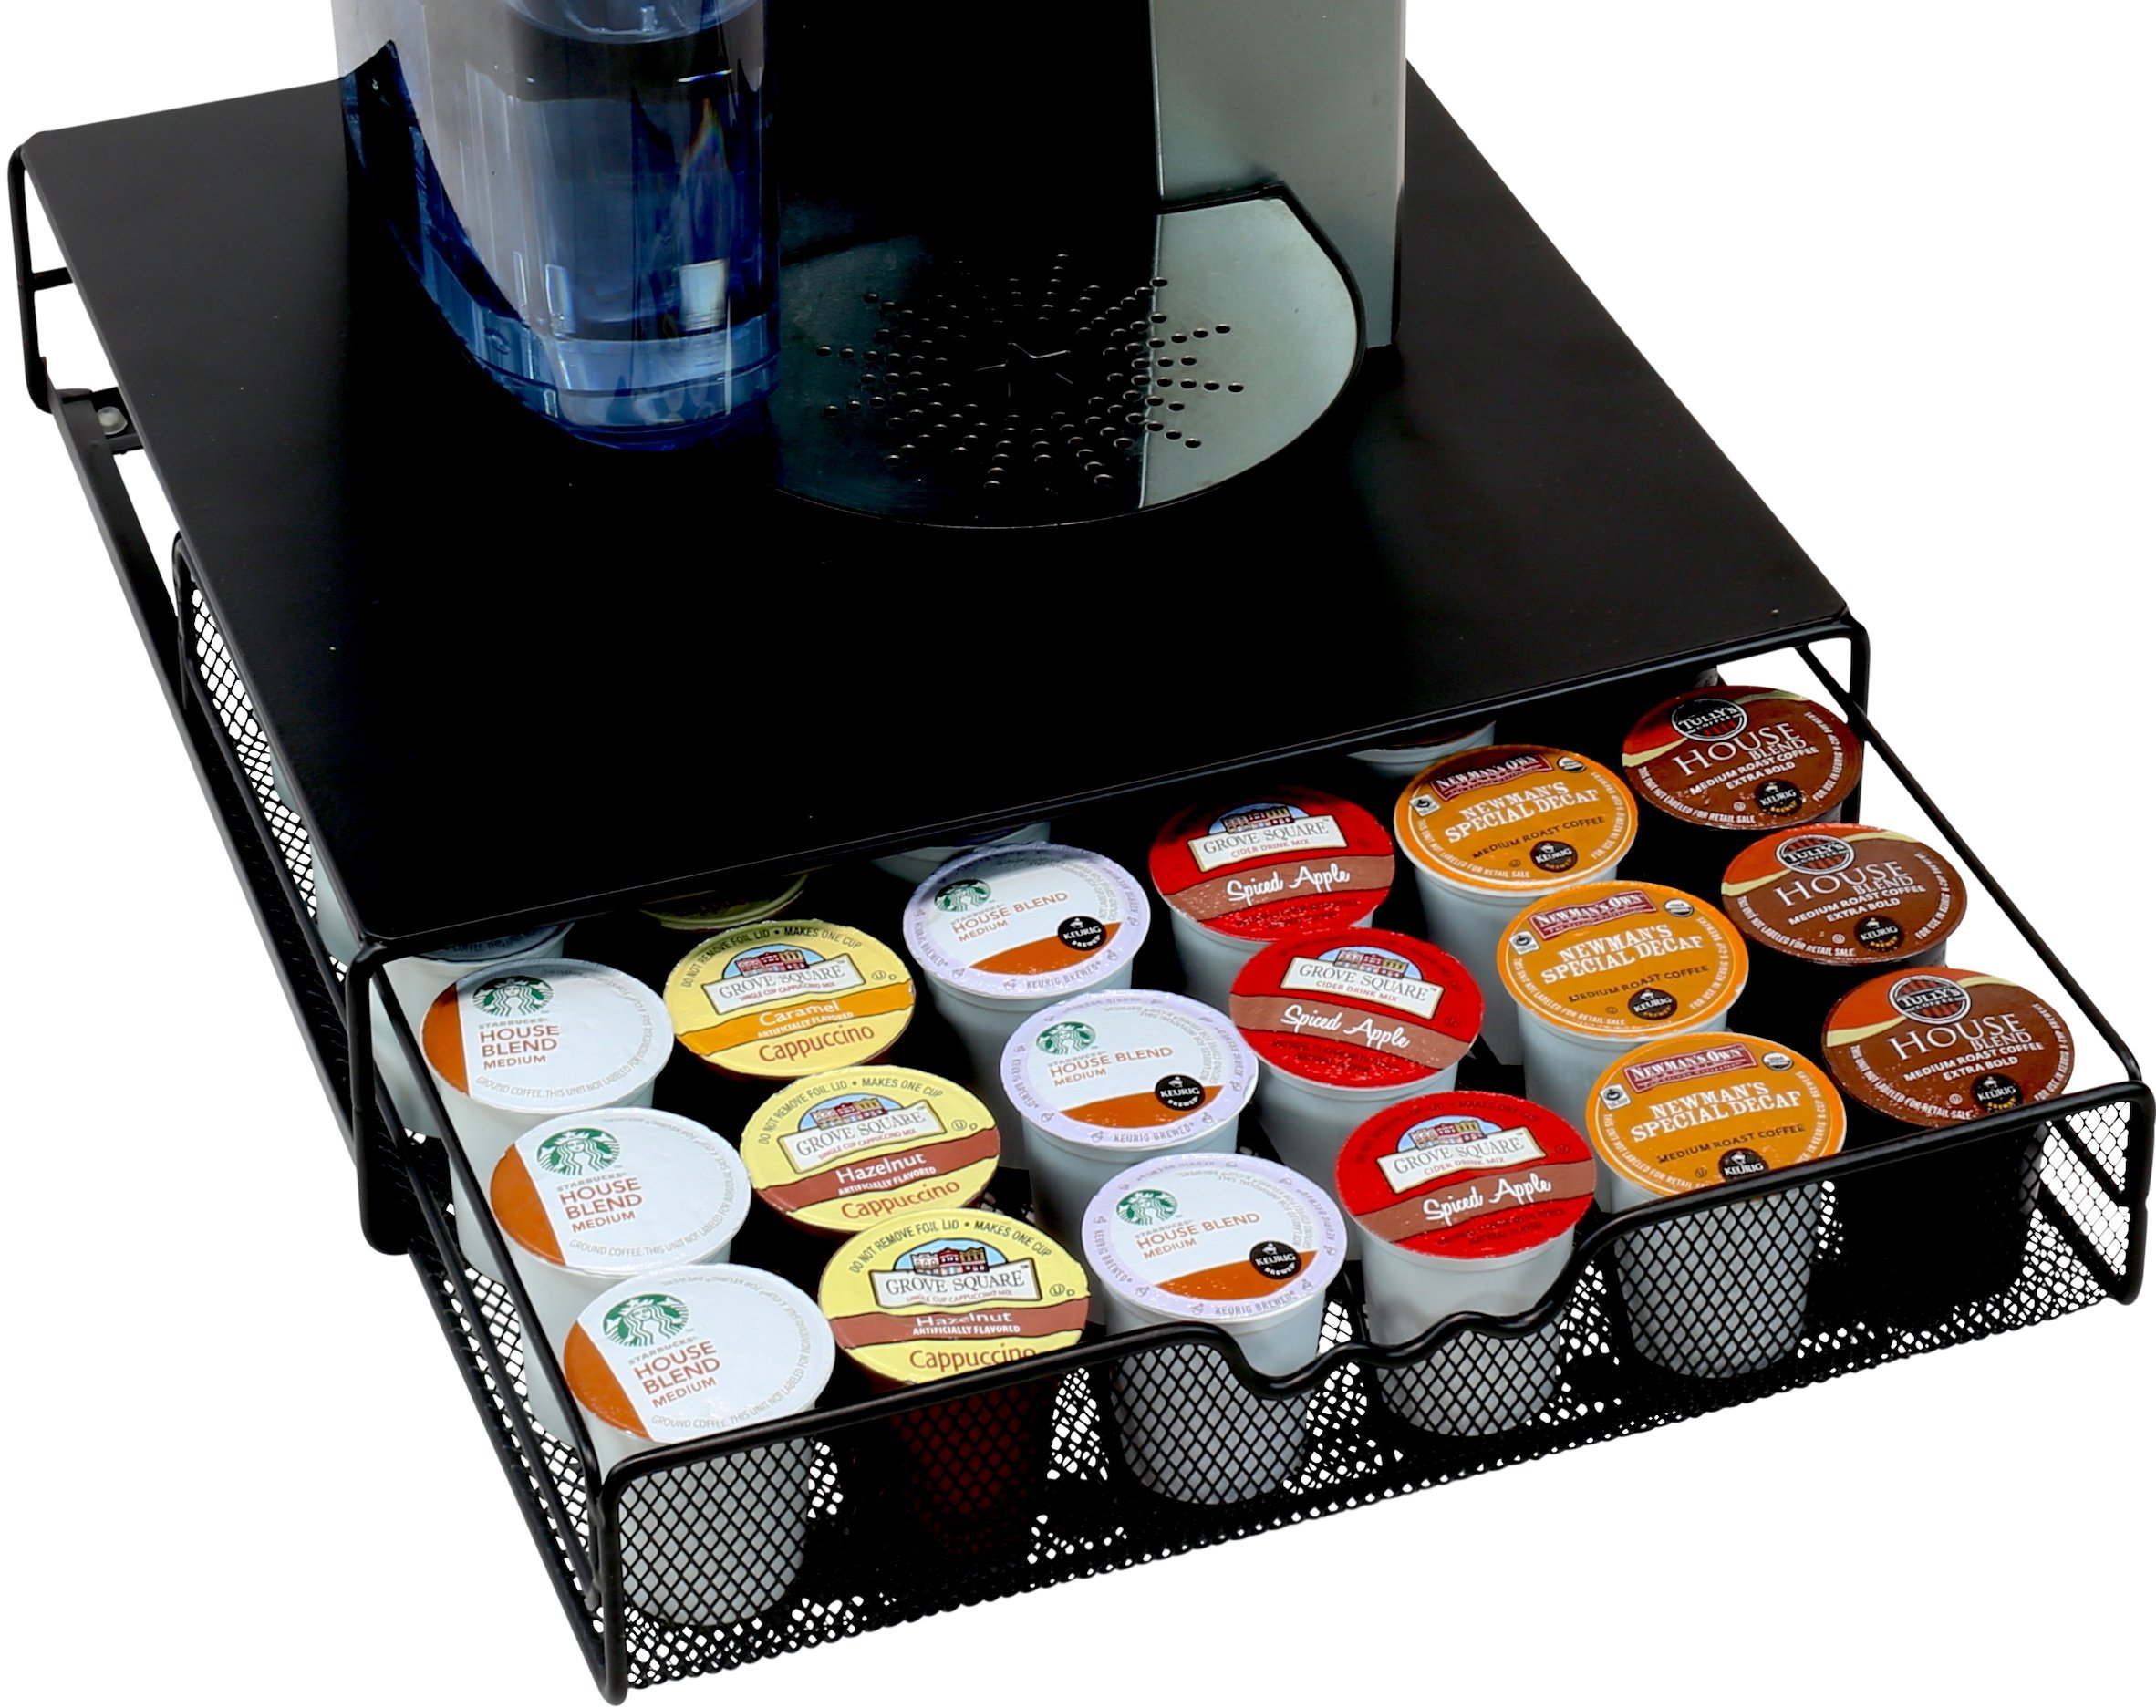 DecoBros K-cup Storage Drawer Holder for Keurig K-cup Coffee Pods by Deco Brothers (Image #3)